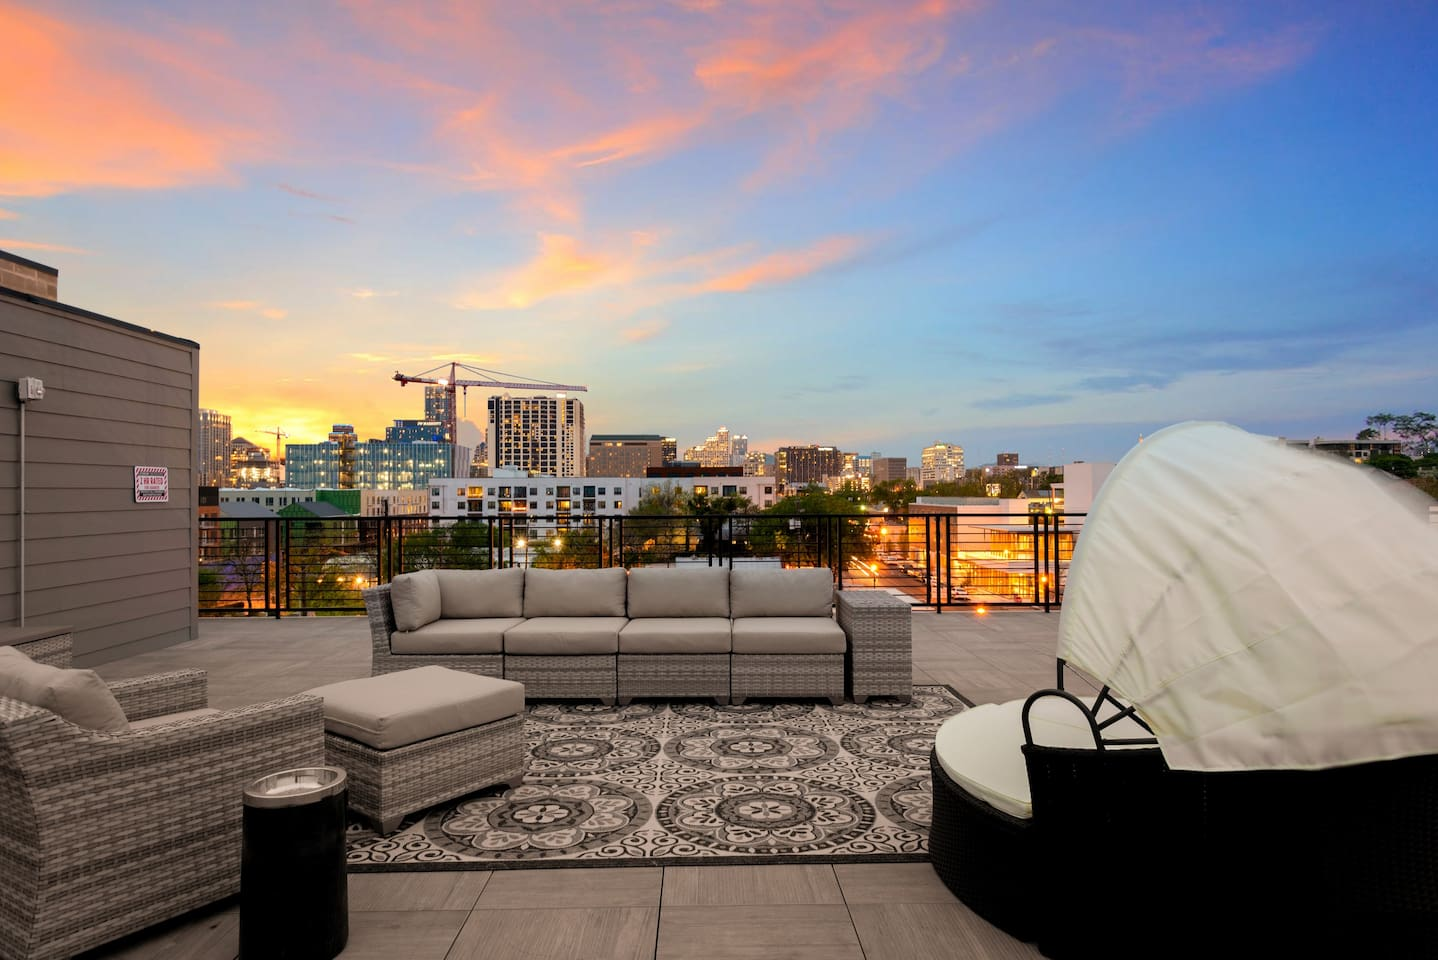 Enjoy the skyline view from the roofdeck. Walk almost everywhere in Austin from the hotel lobby!